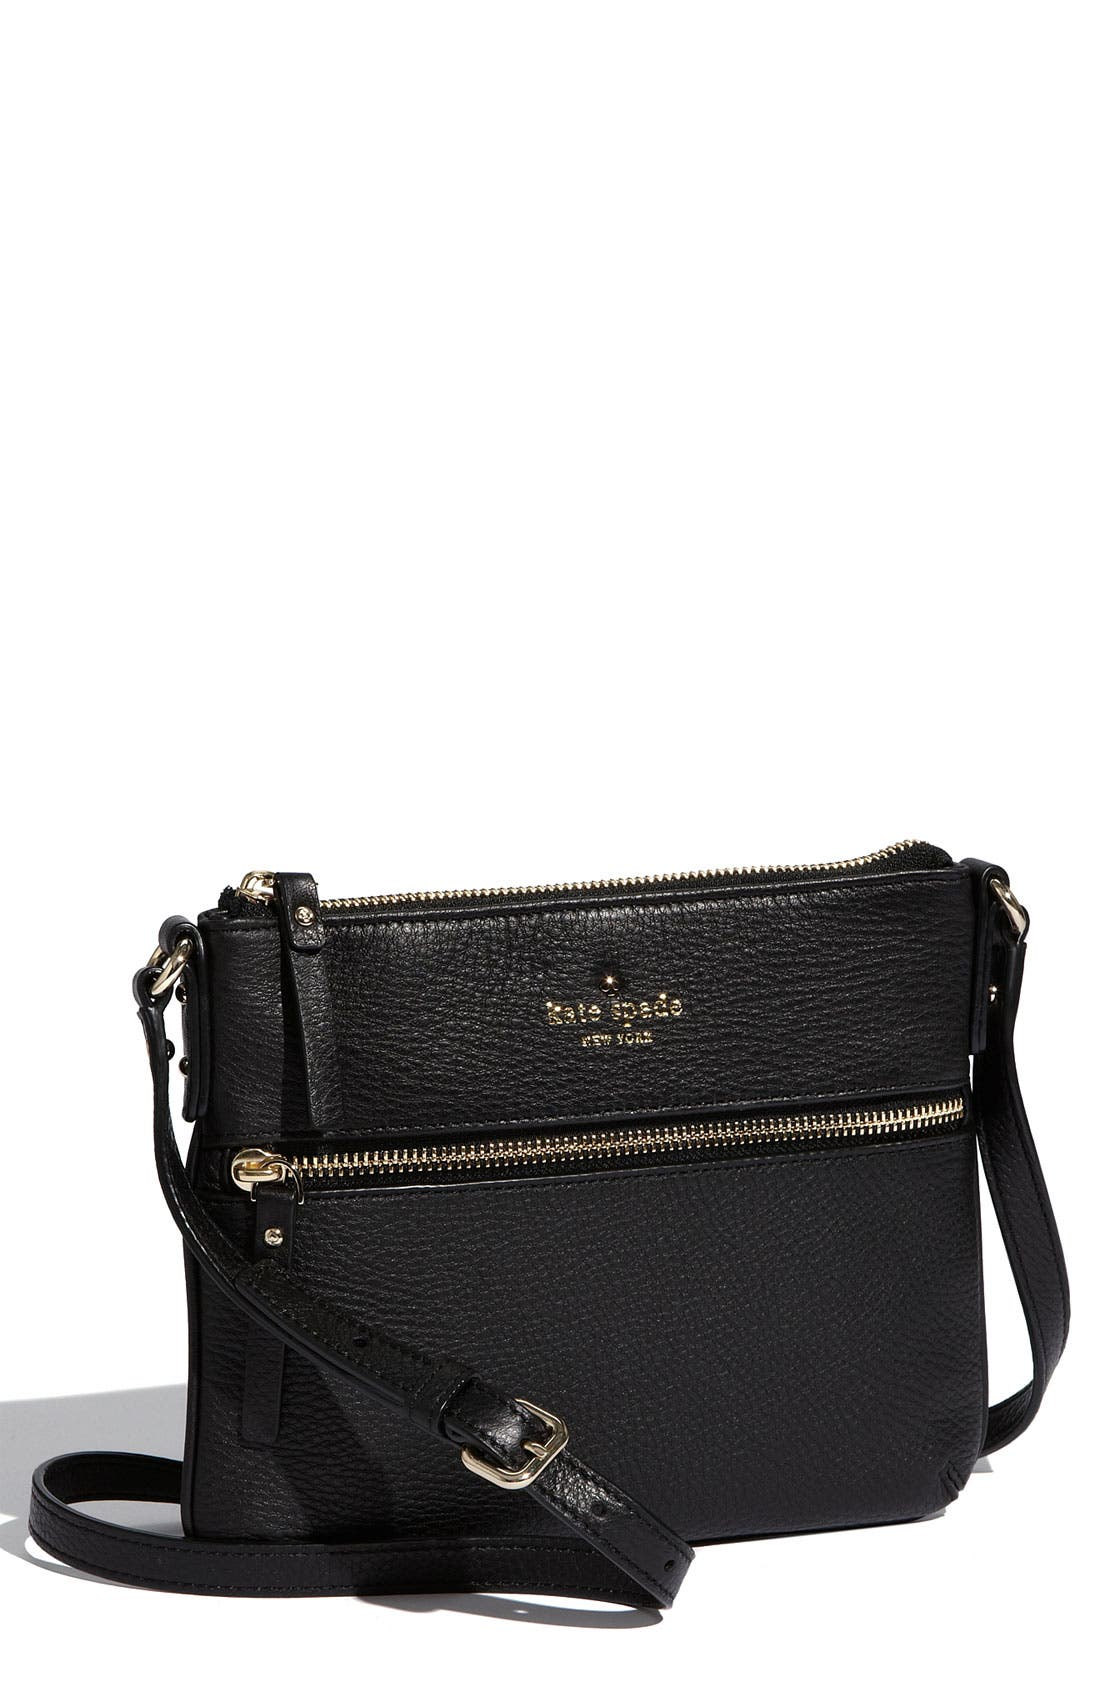 Main Image - kate spade new york 'cobble hill - tenley' crossbody bag